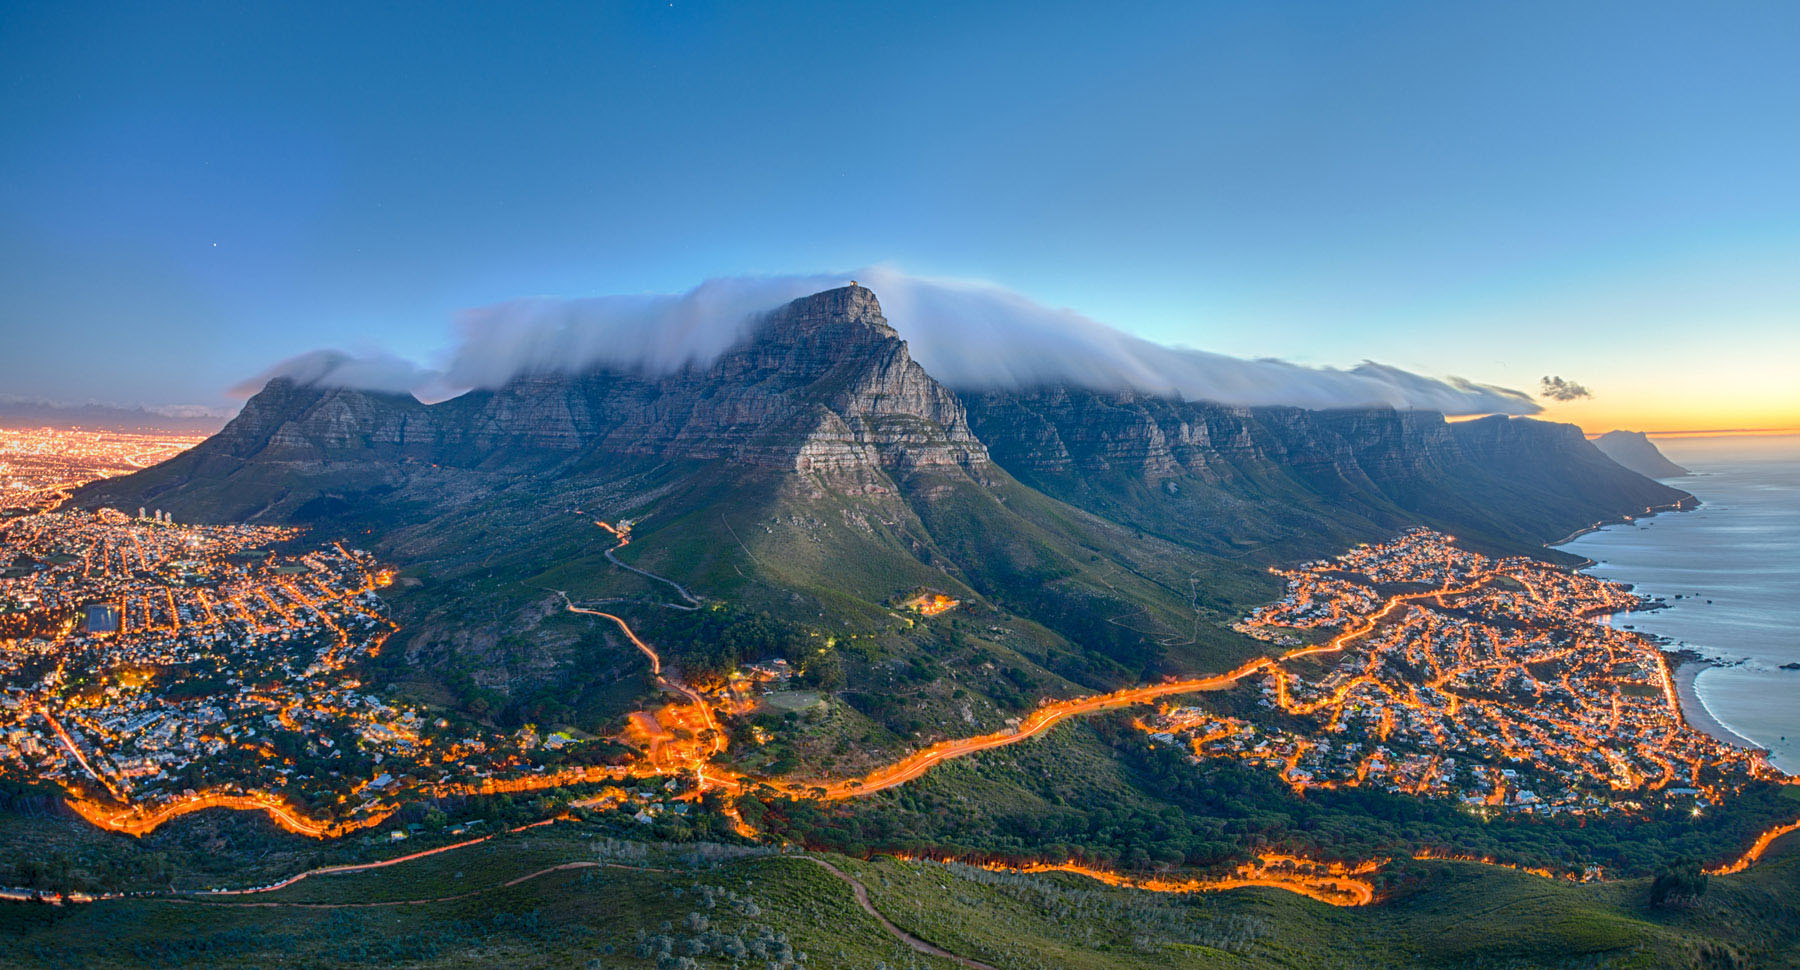 Table Mountain towers over Cape Town in South Africa